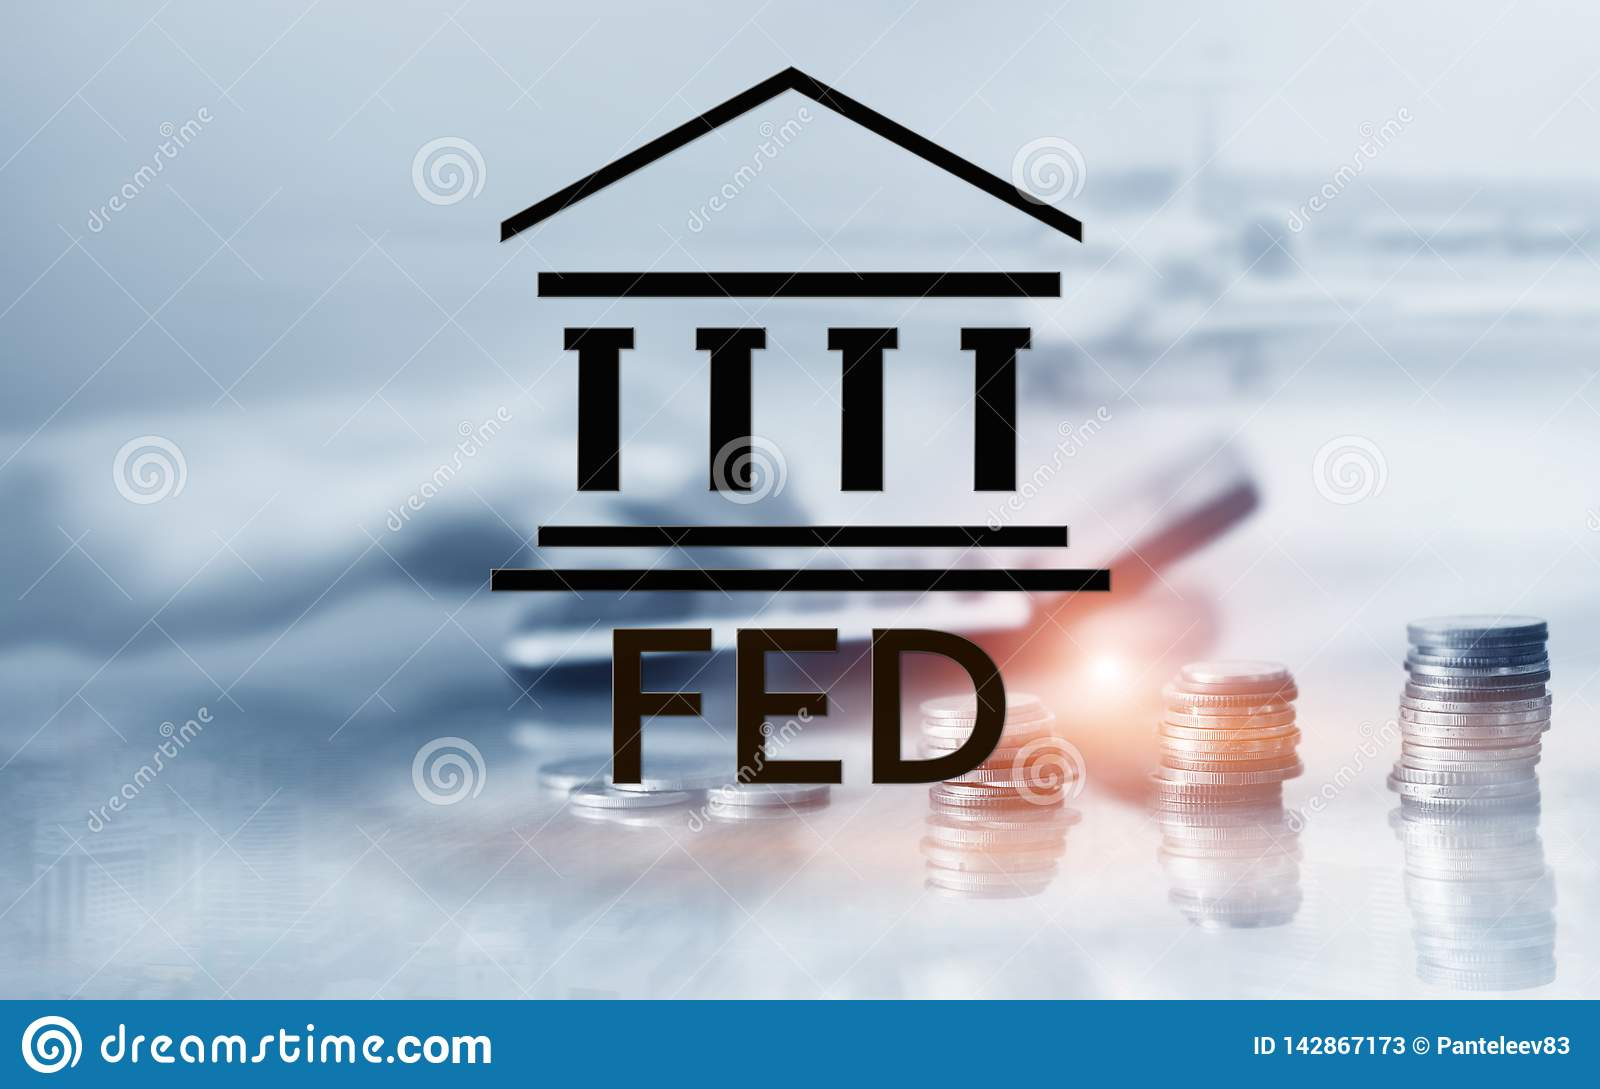 Federal Reserve System - FED. Banking Economy Concept. Double exposure background.